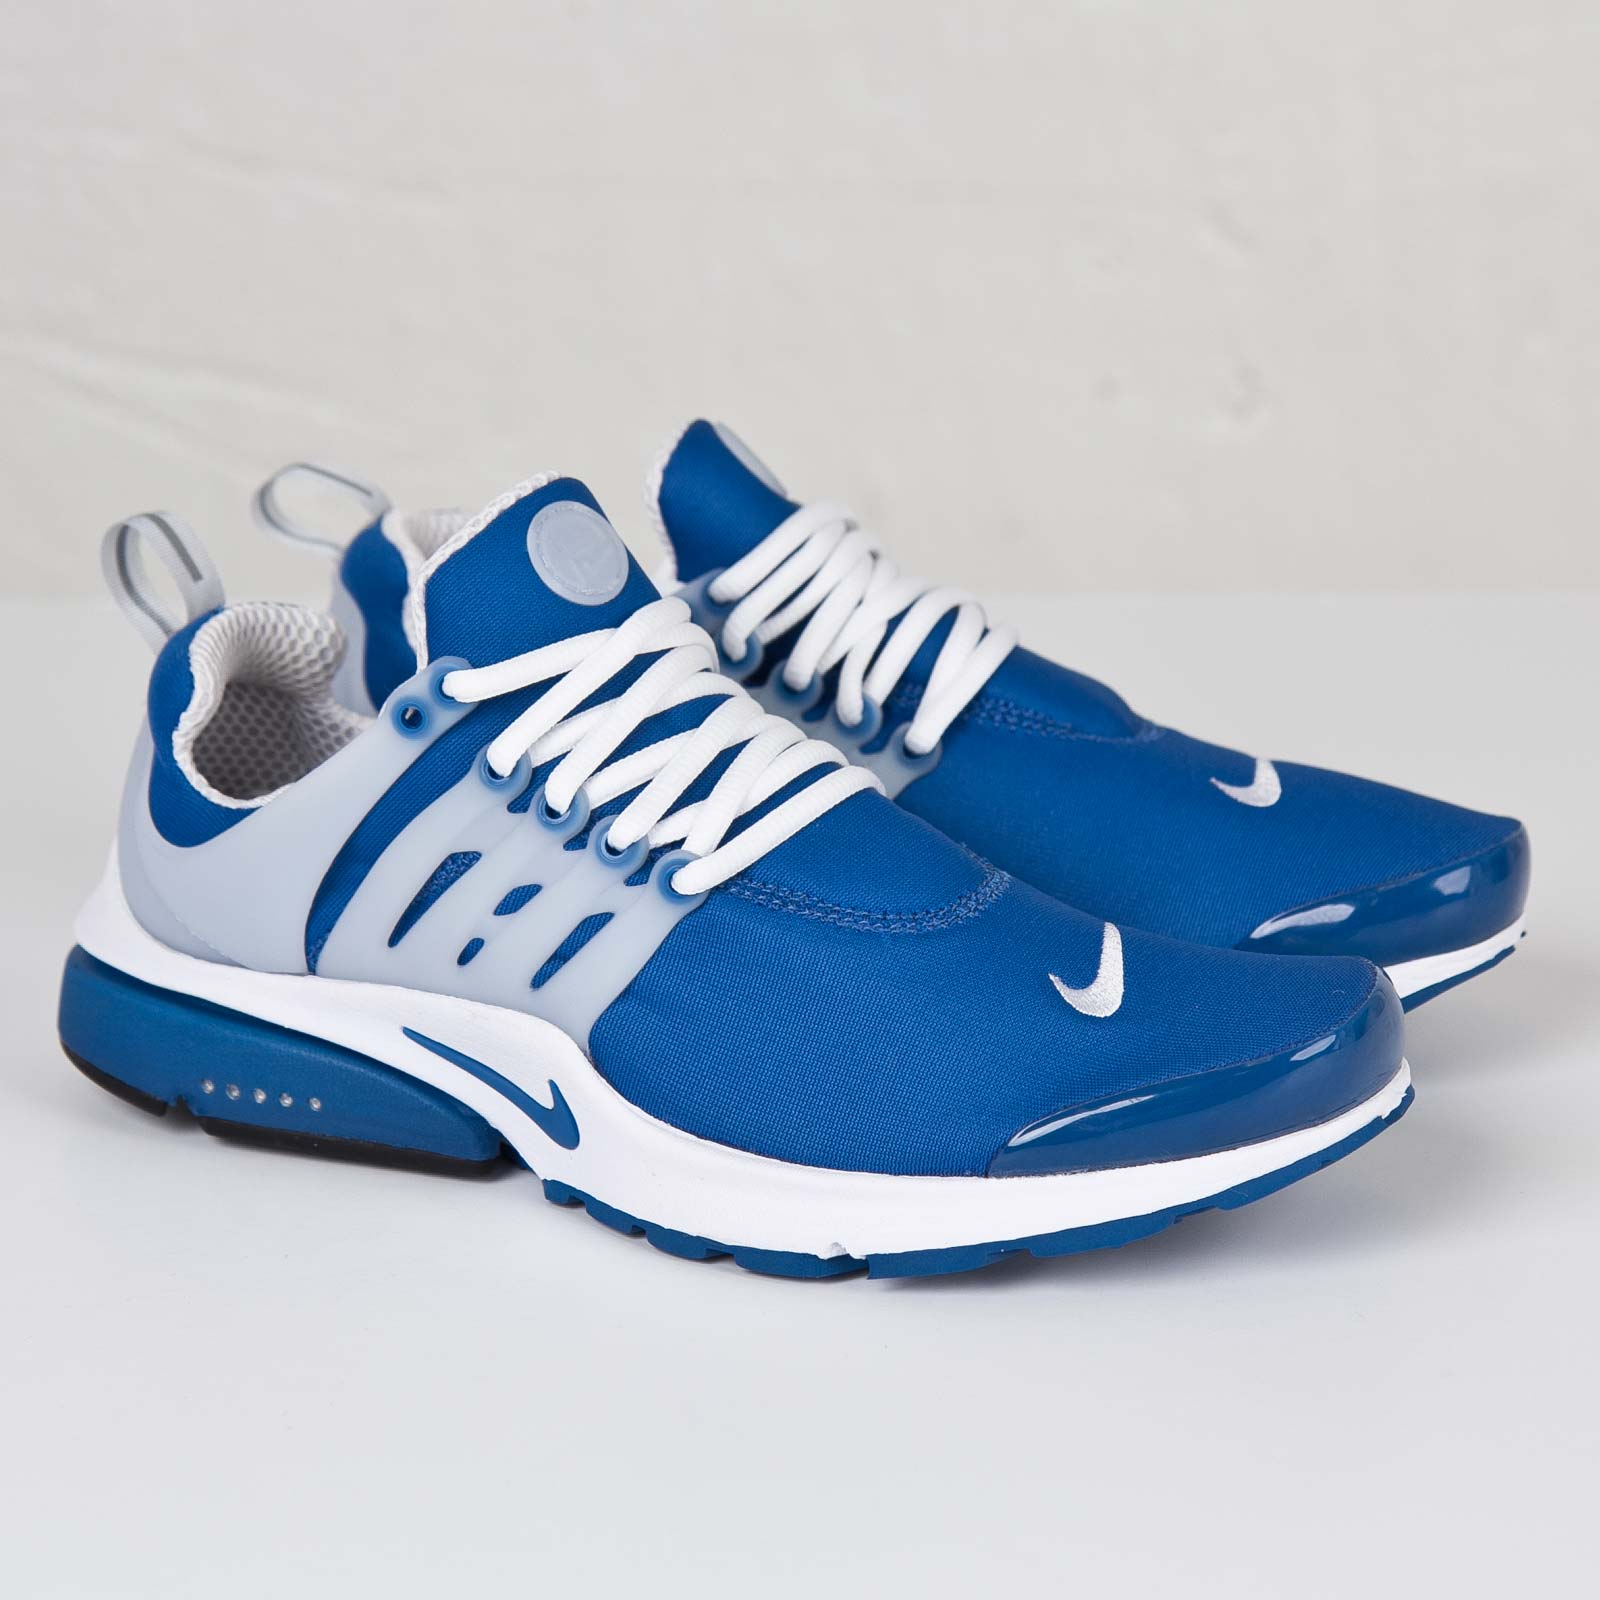 casual shoes 50% price sale online Nike Air Presto QS - 789870-413 - Sneakersnstuff | sneakers ...